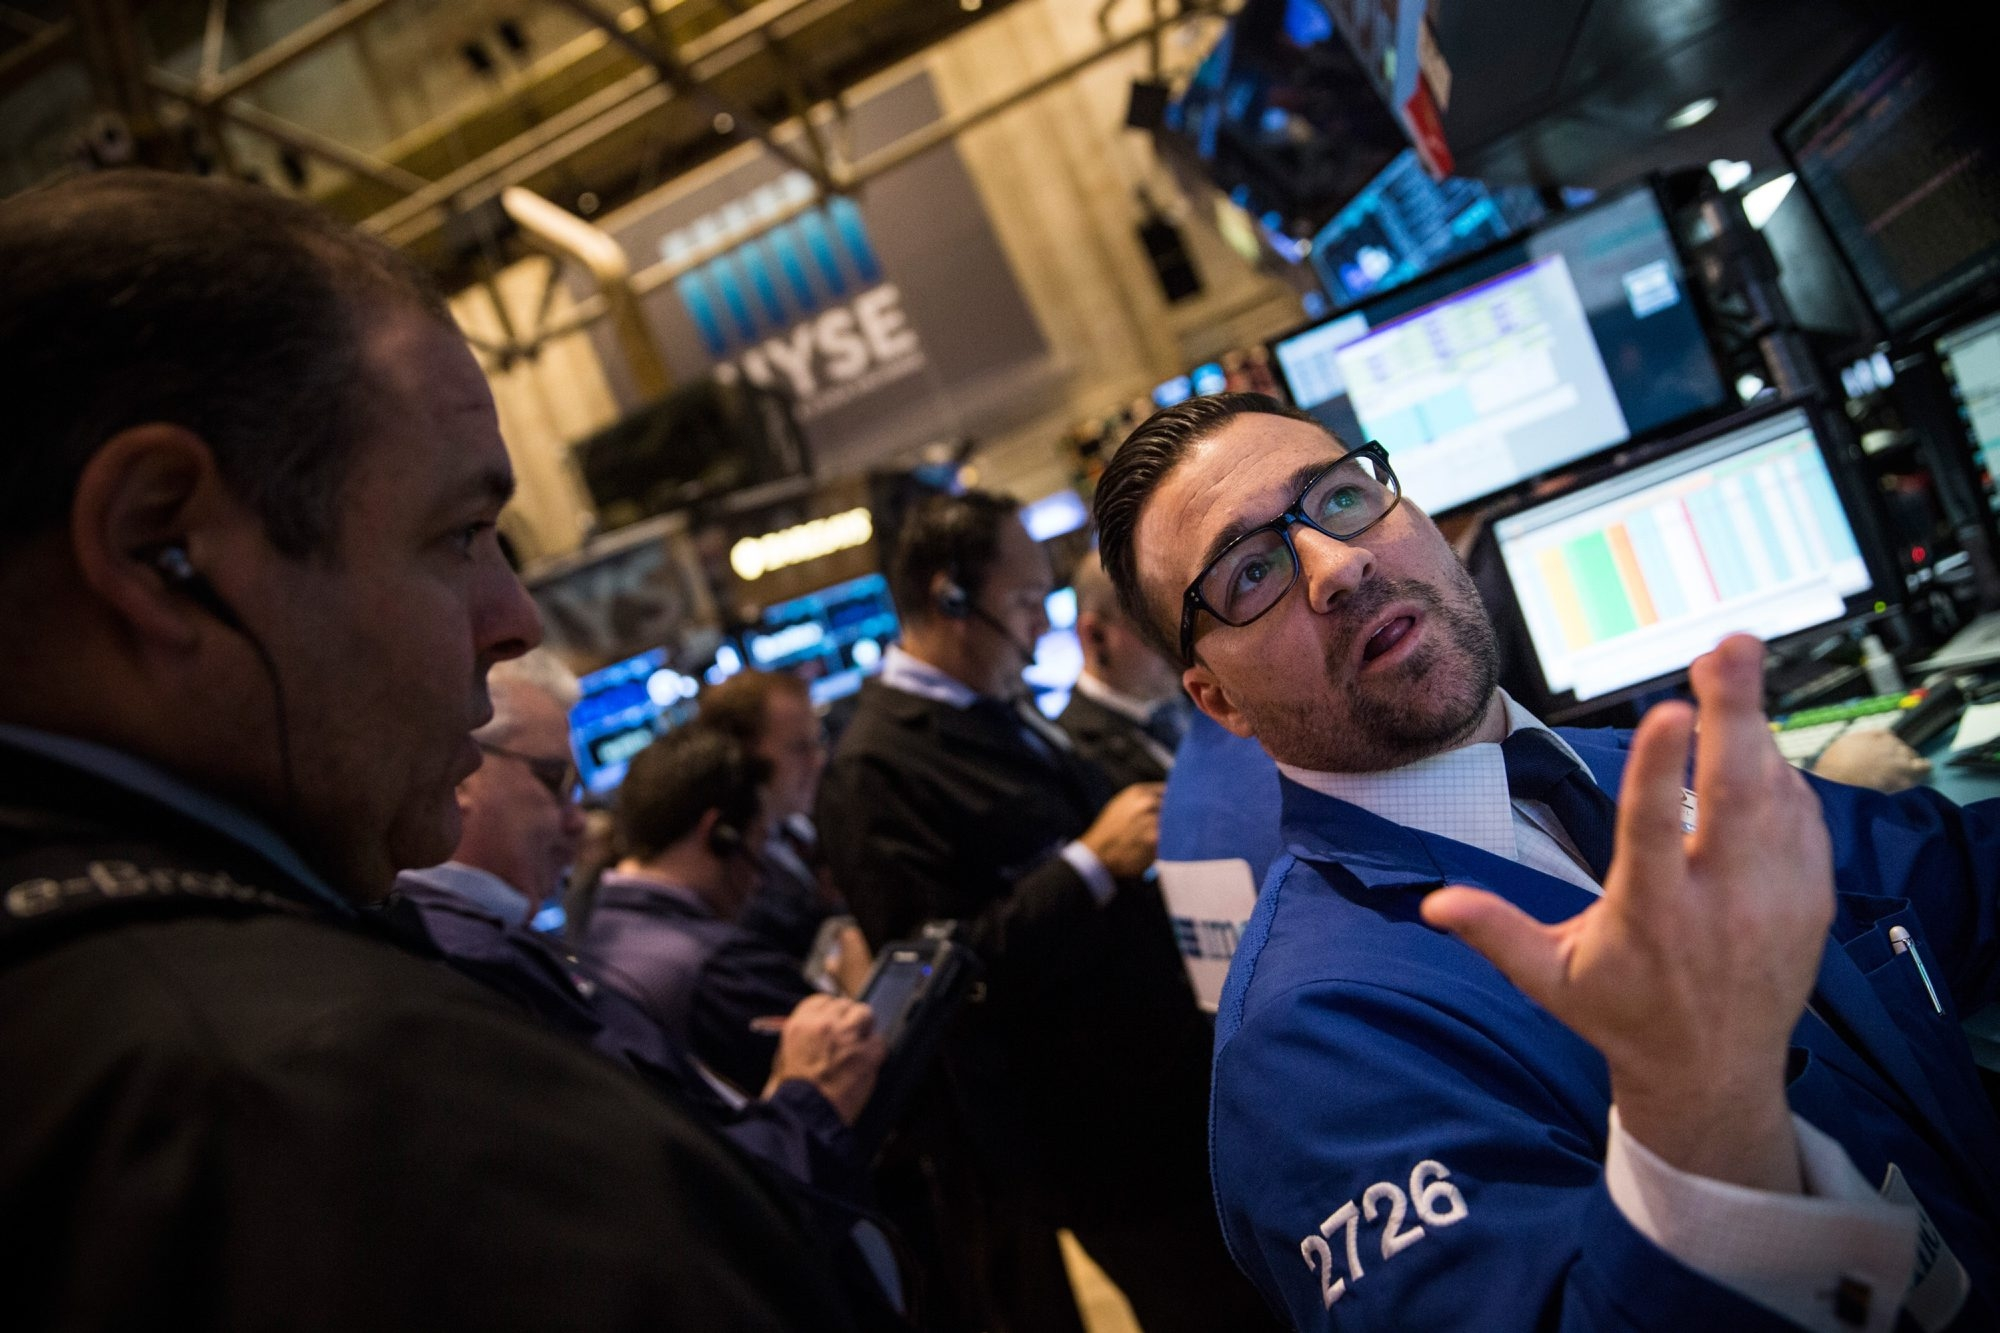 Traders work Monday morning on the floor of the New York Stock Exchange in New York City. The Dow Jones Industrial Average dipped slightly upon opening after Greece held elections over the weekend.